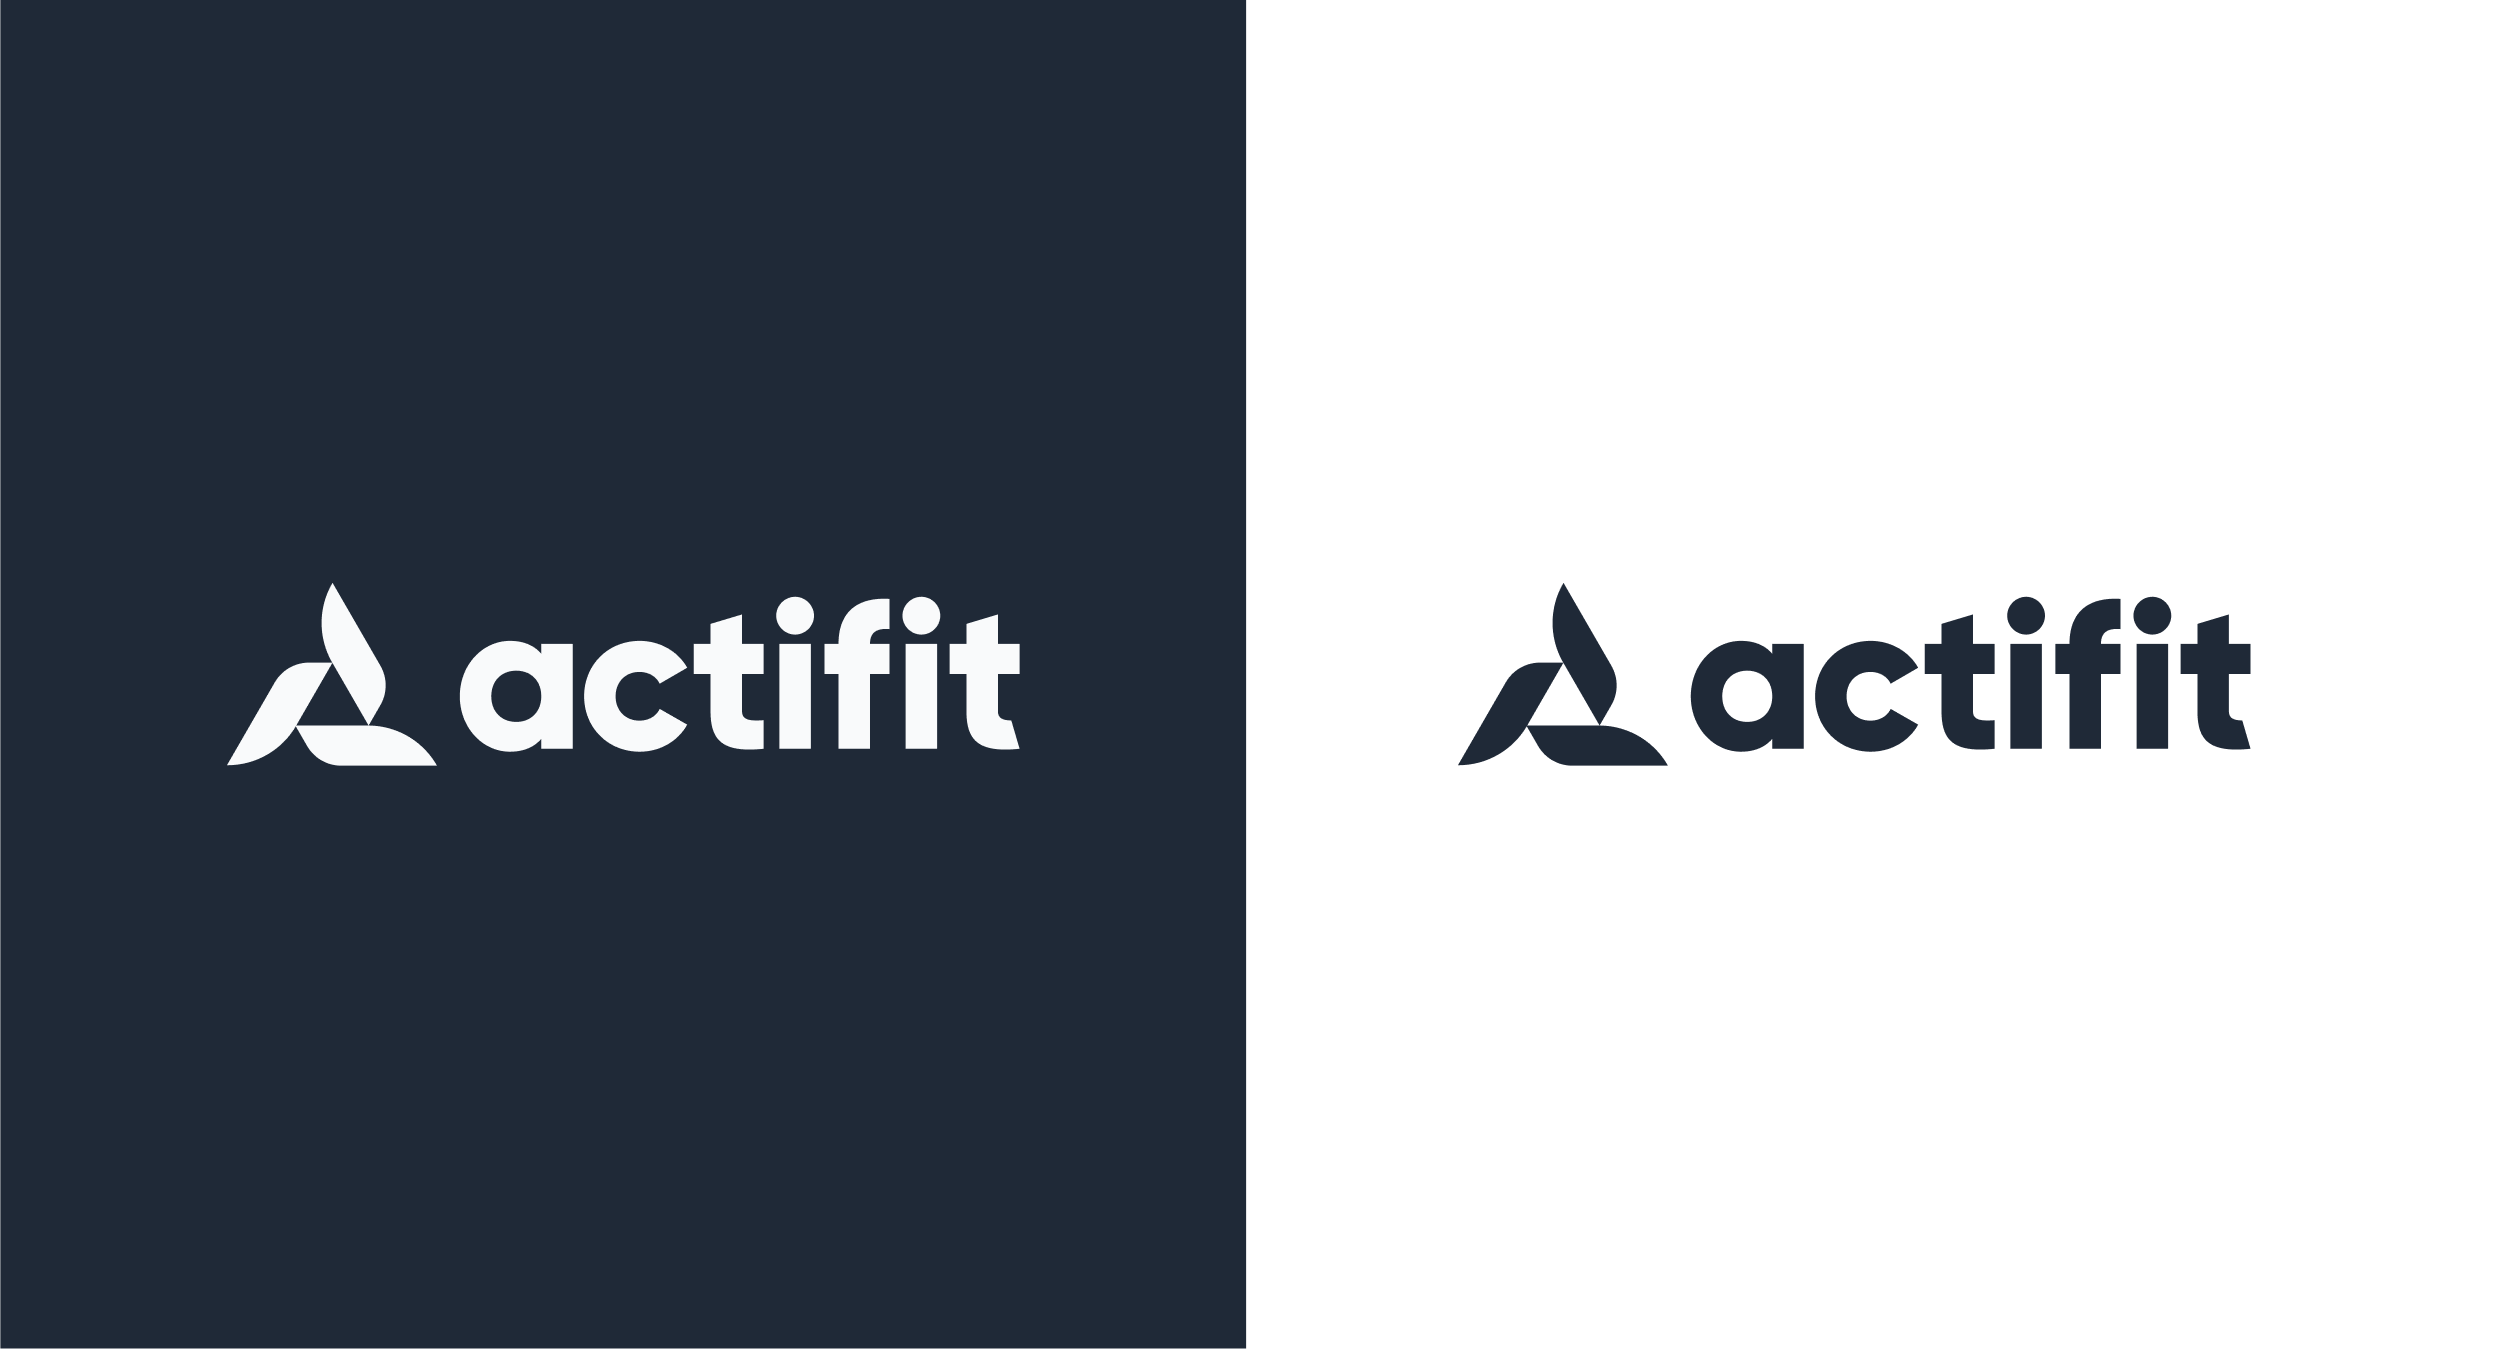 actifit-redesign-bw.png